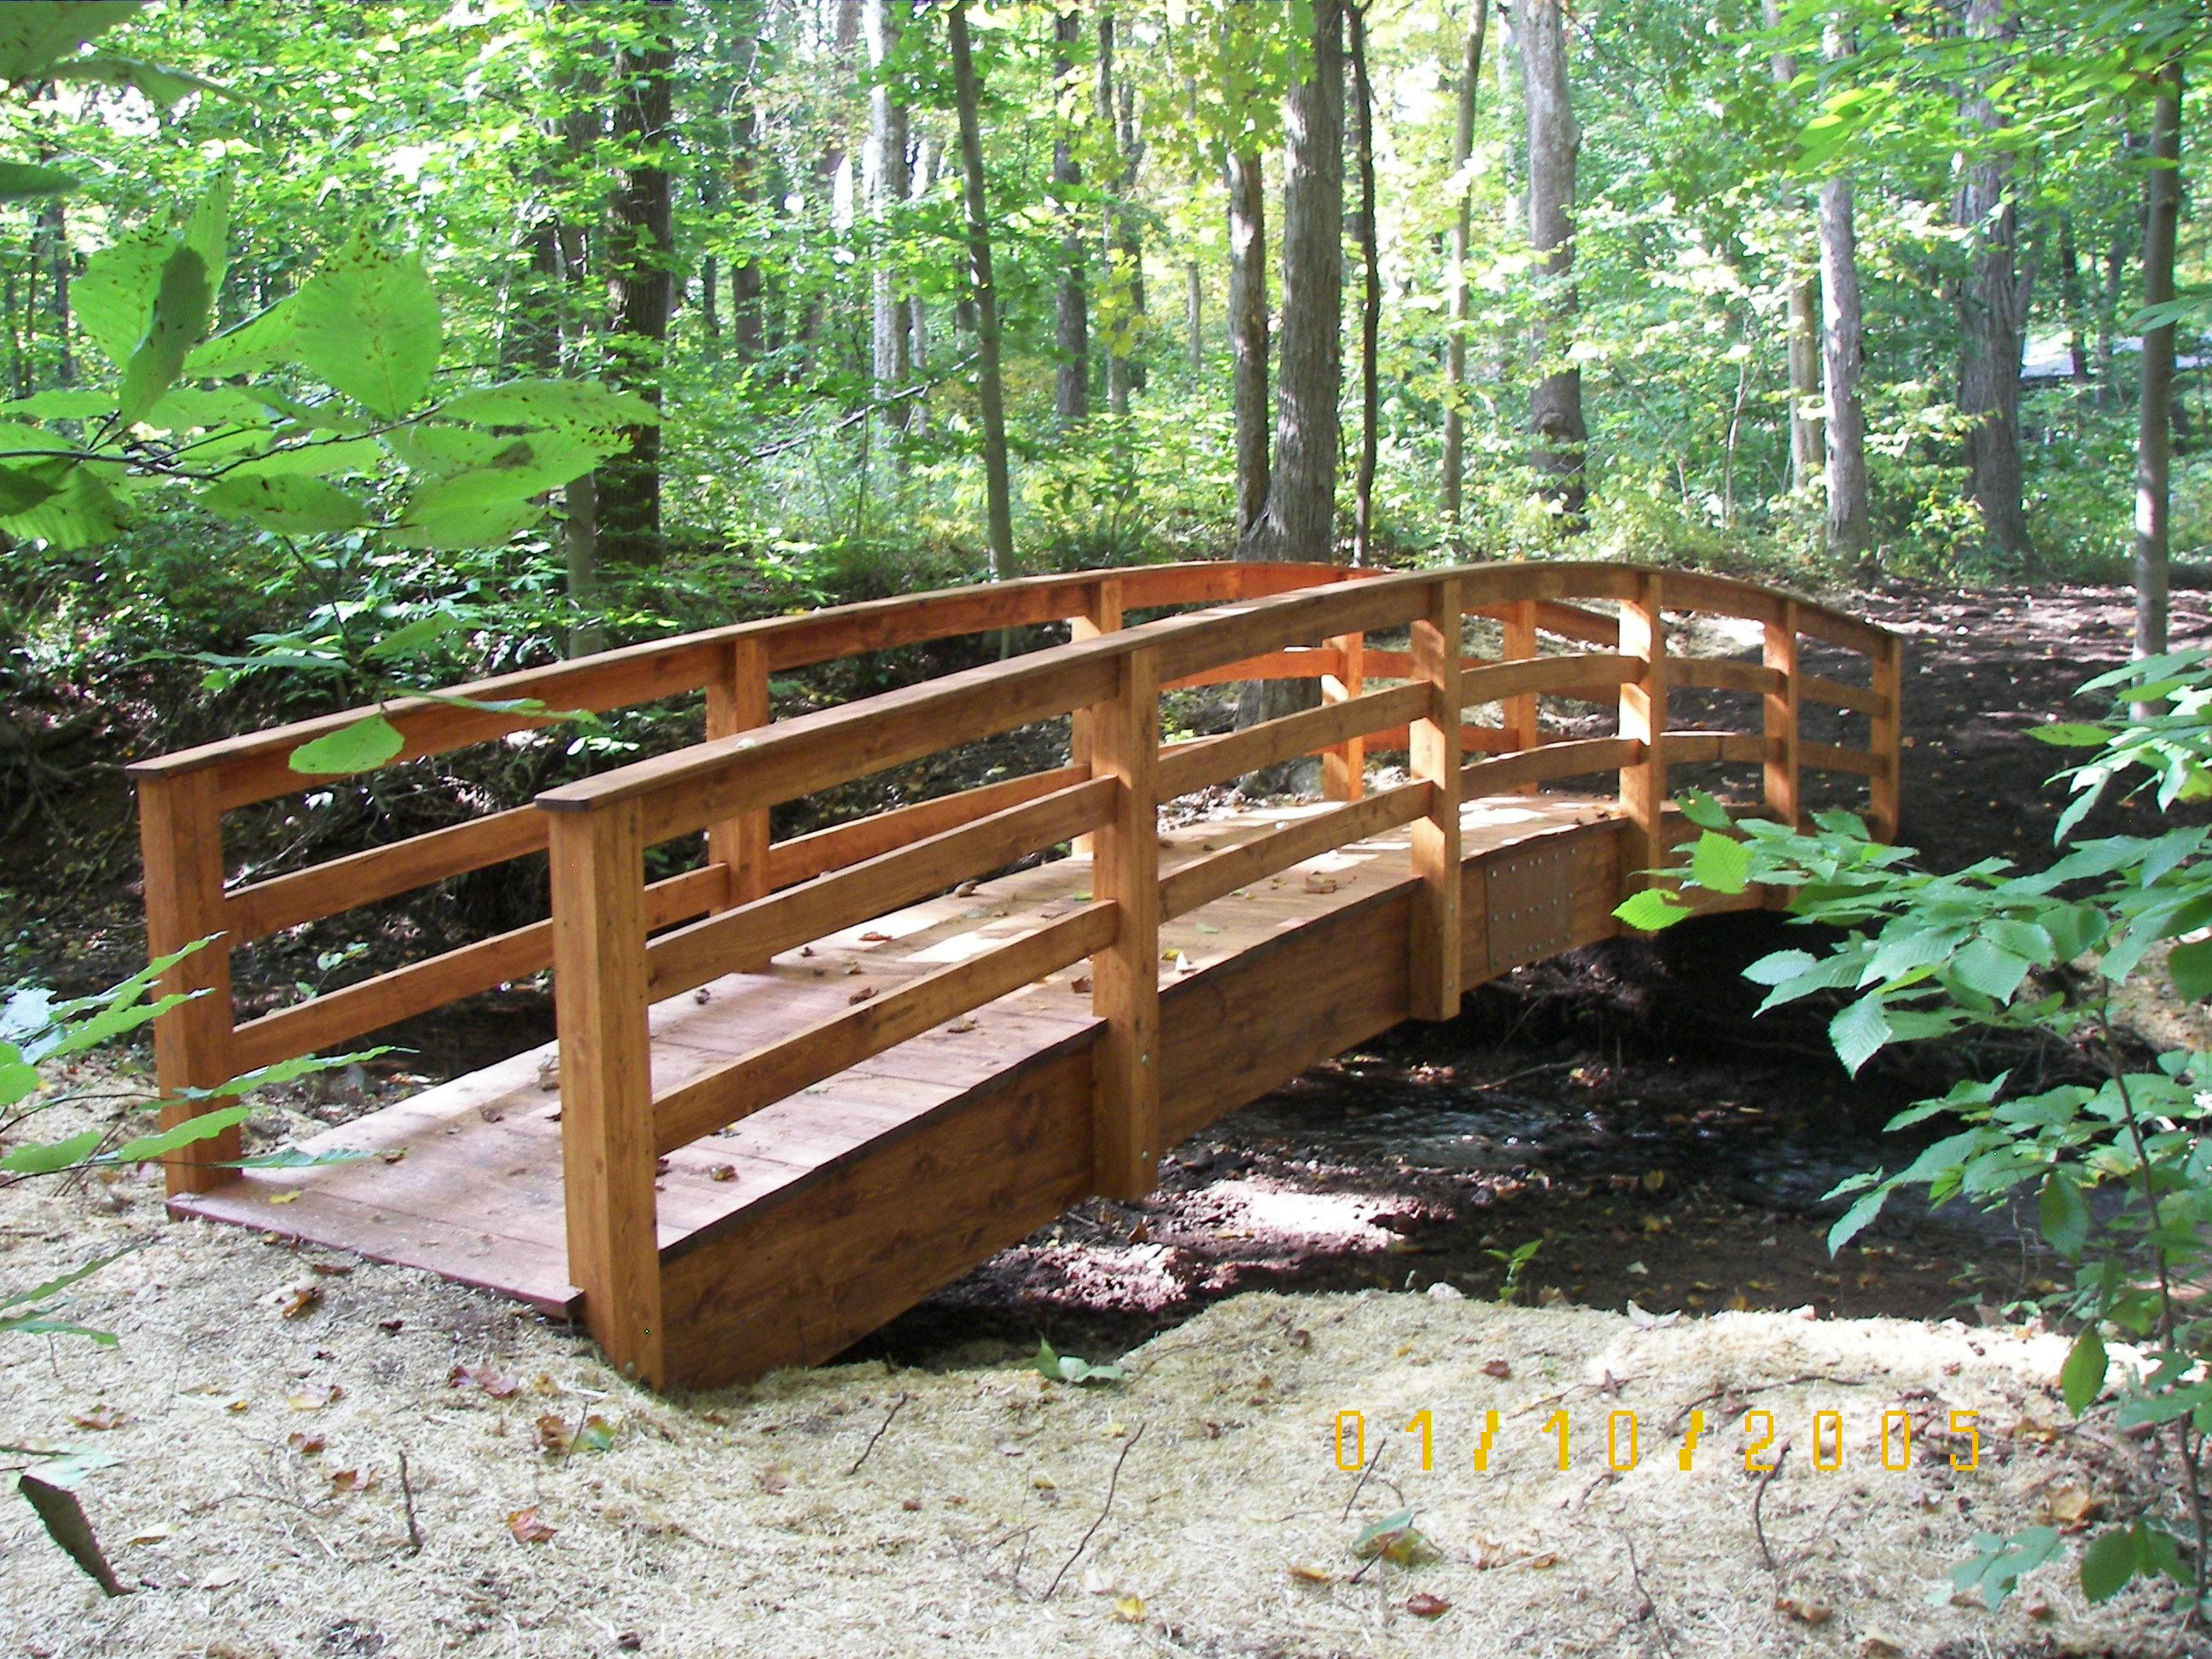 Wooden Garden and Pond bridges can be used as a trail bridges